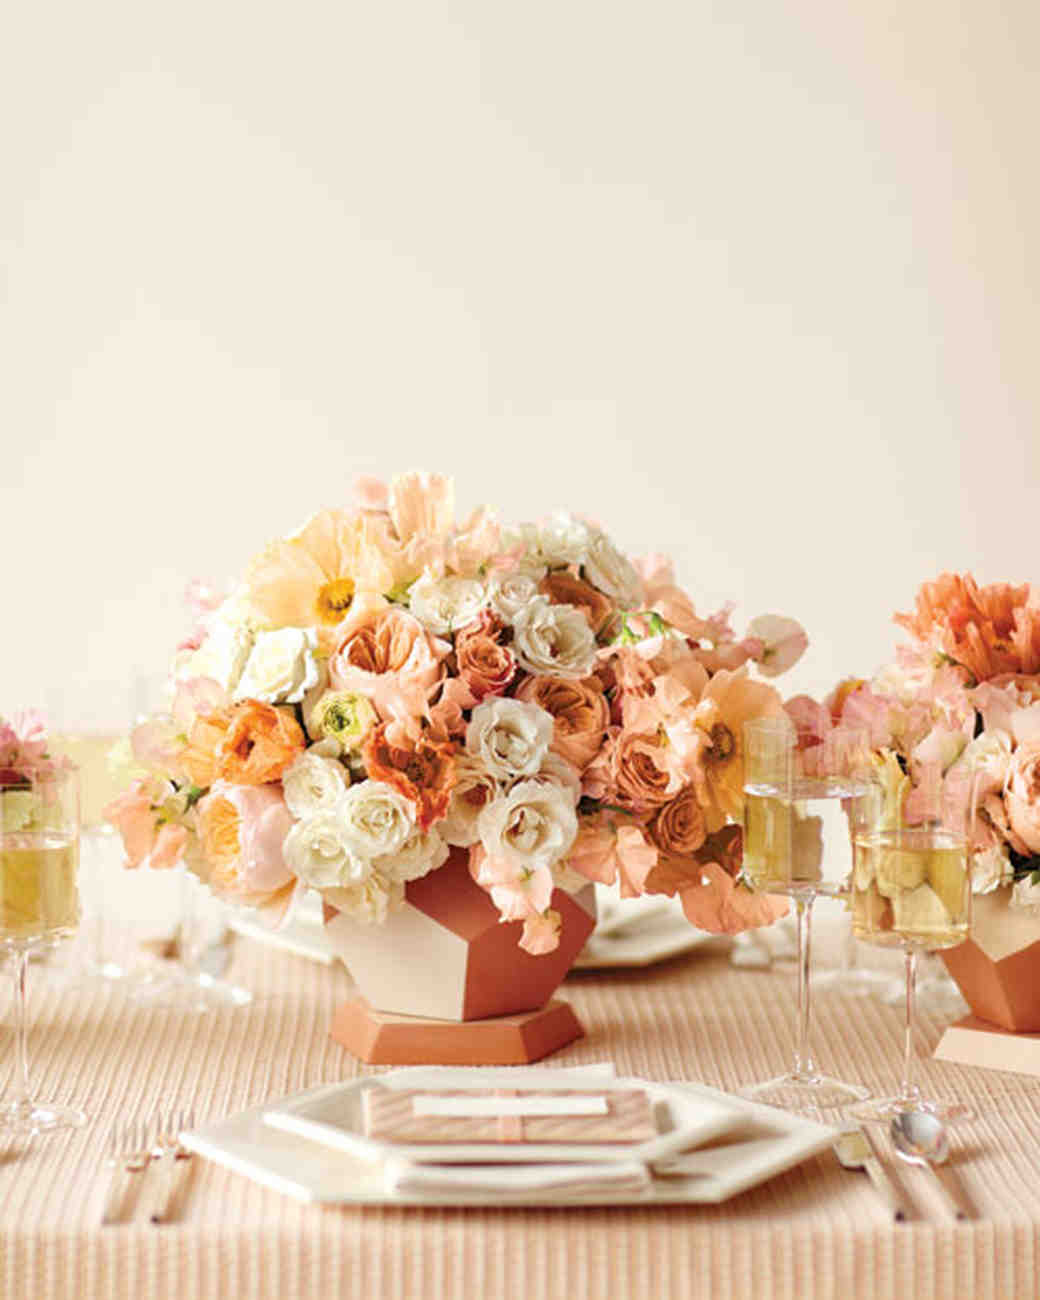 Peaches And Cream Is A Wedding Color Combination That Is Gloriously